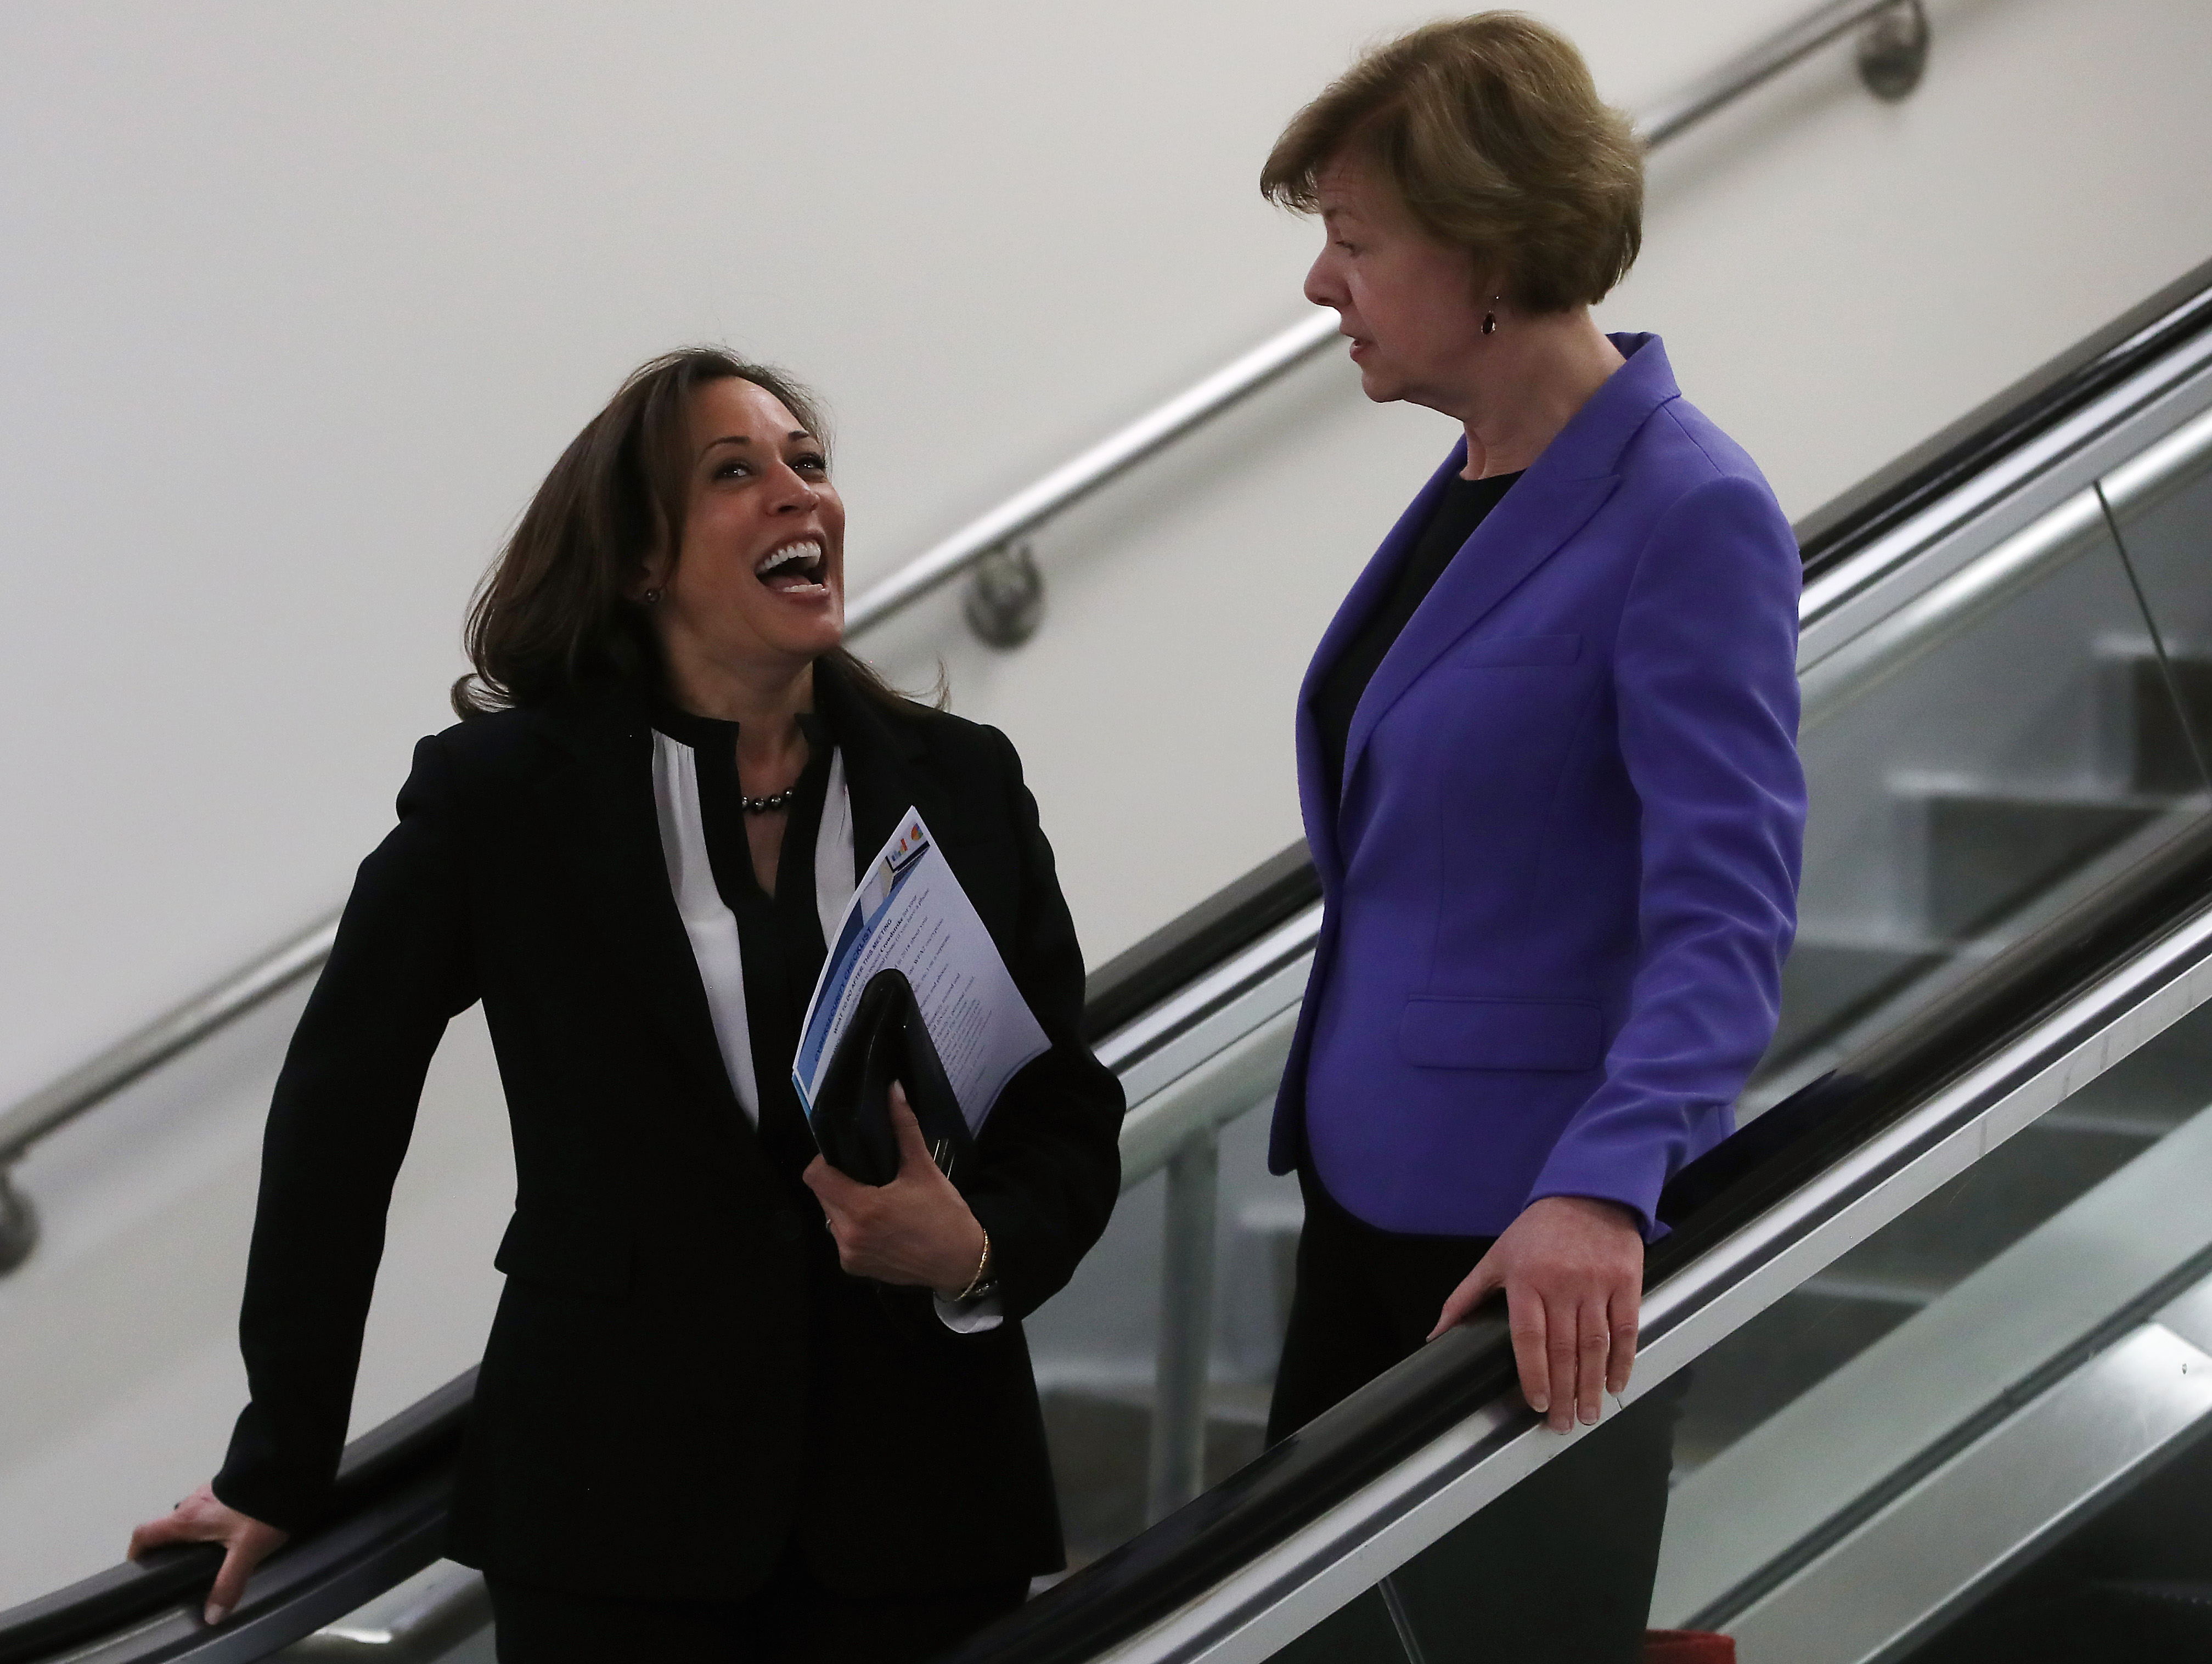 Sen. Kamala Harris, talks with Sen. Tammy Baldwin in the Senate subway after the Senate voted to overturn the President's national emergency border declaration, at the U.S. Capitol on March 14, 2019 in Washington, DC. (Photo by Mark Wilson/Getty Images)